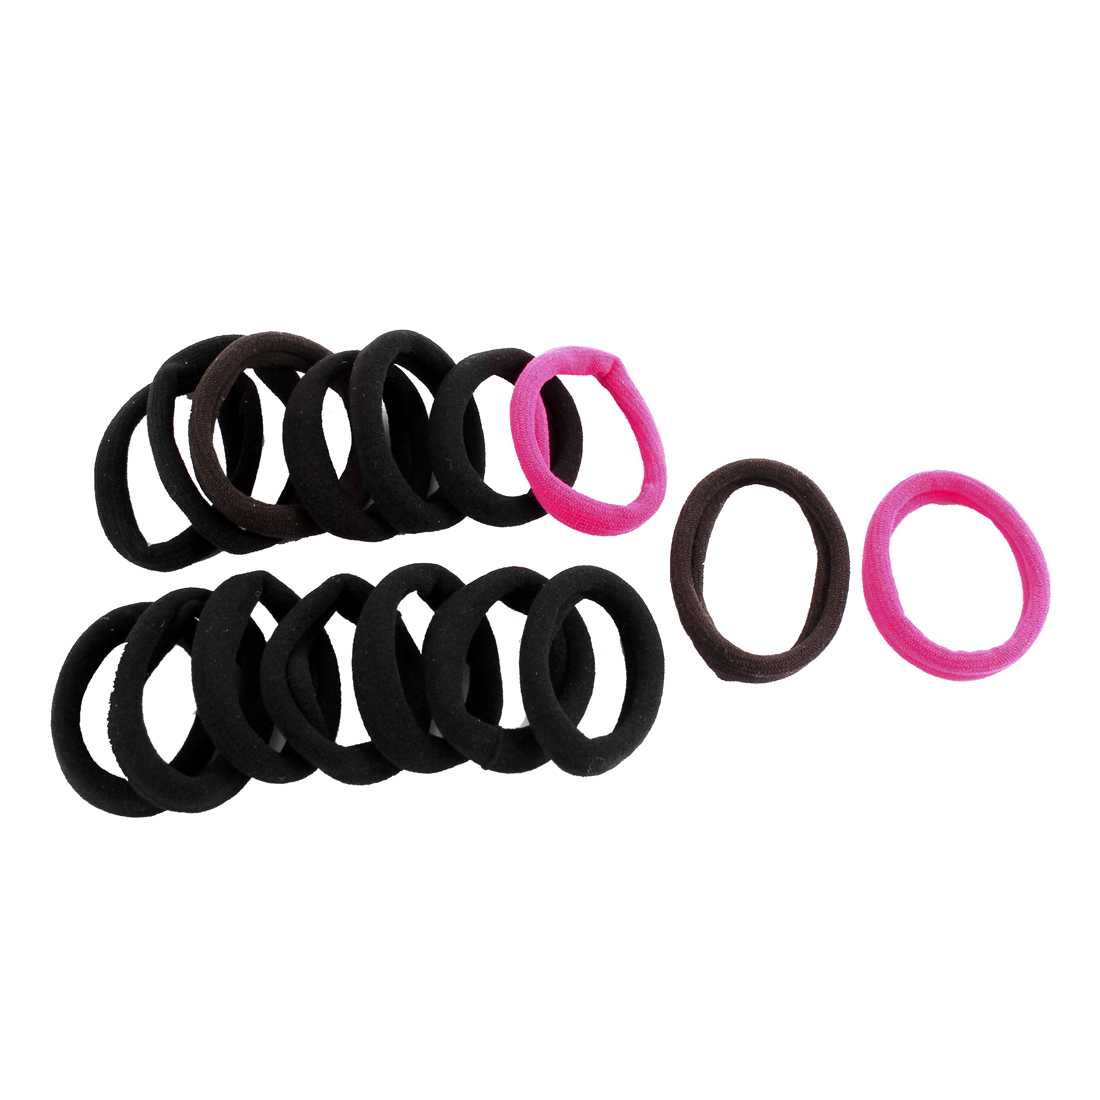 16 Pcs Tri Color Elastic Rubber Hair Bands Ponytail Holders for Ladies Women